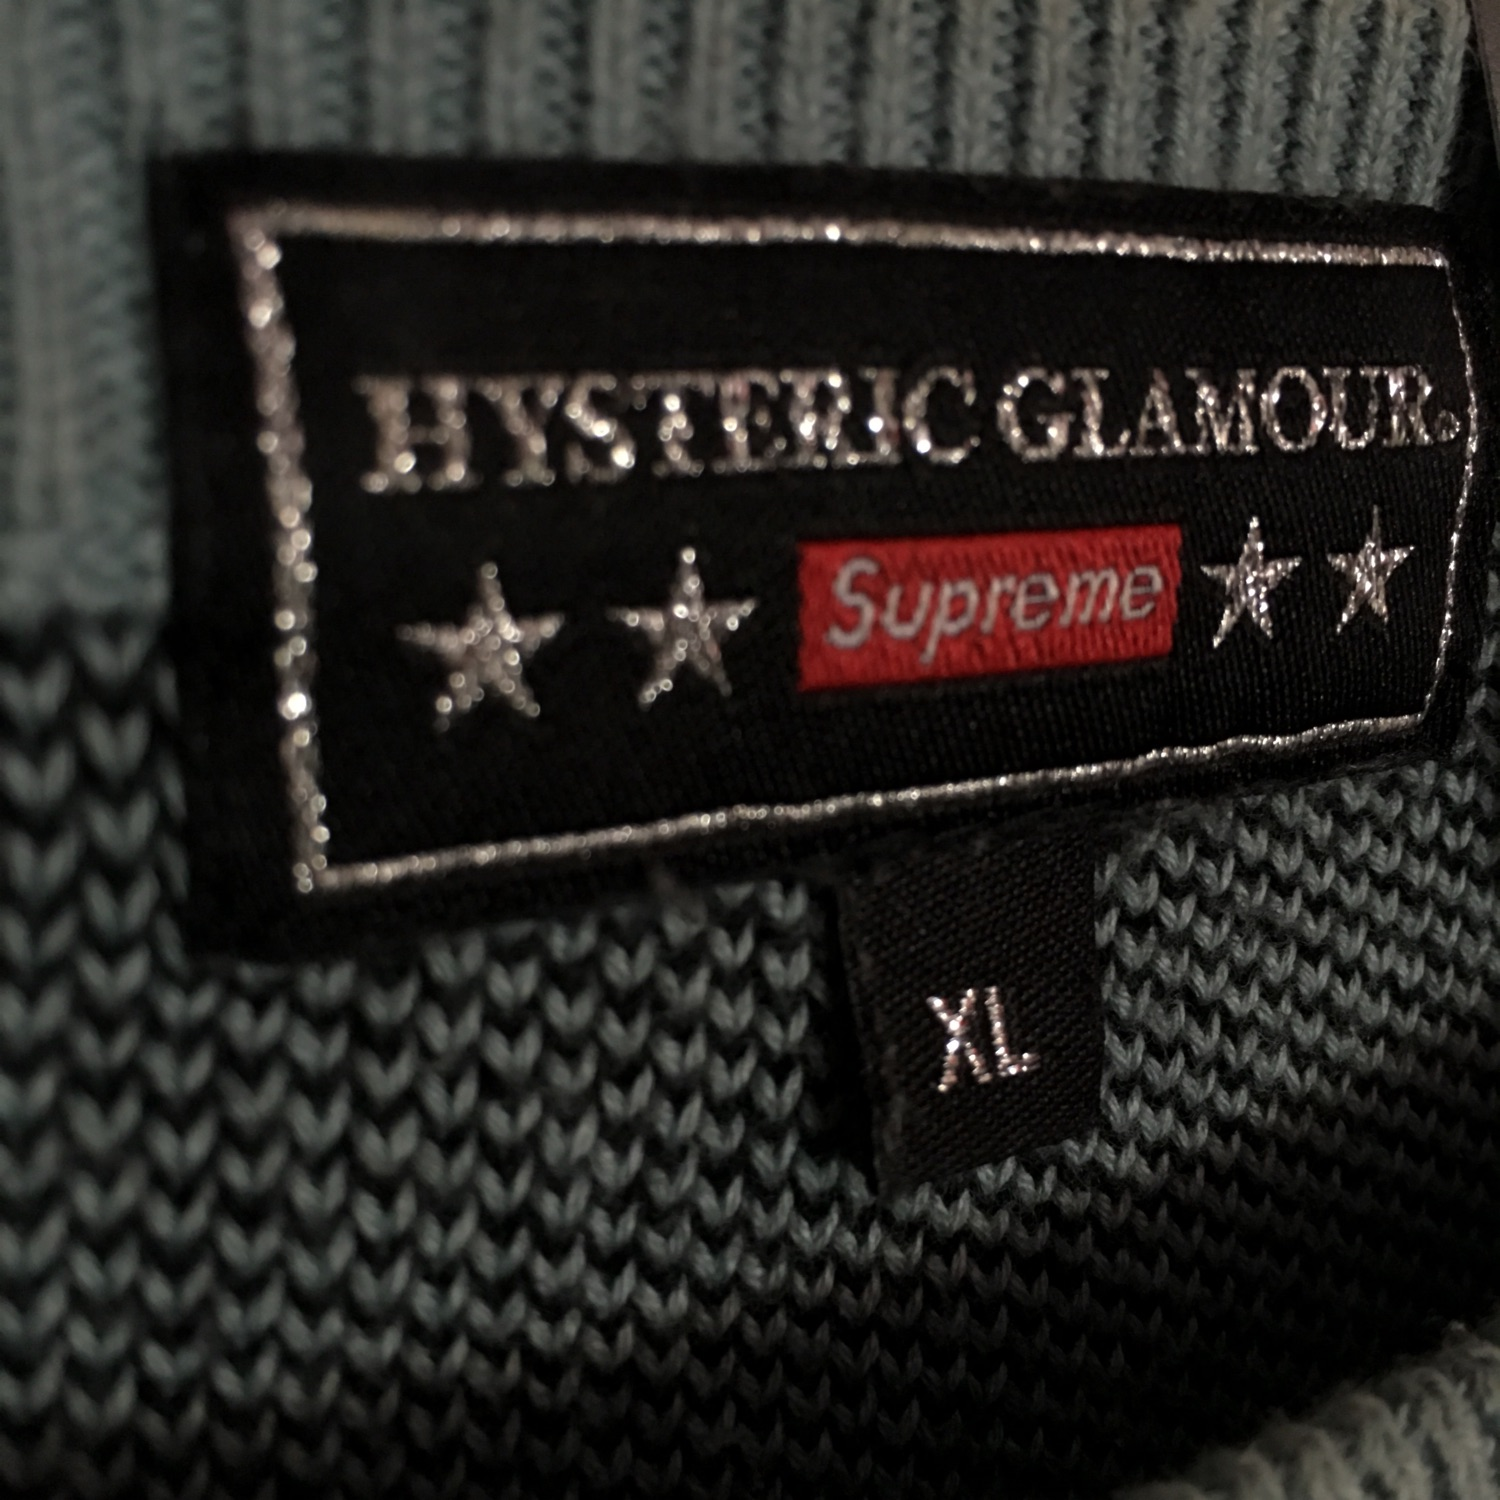 Supreme Hysteric Glamour Fuck You Sweater